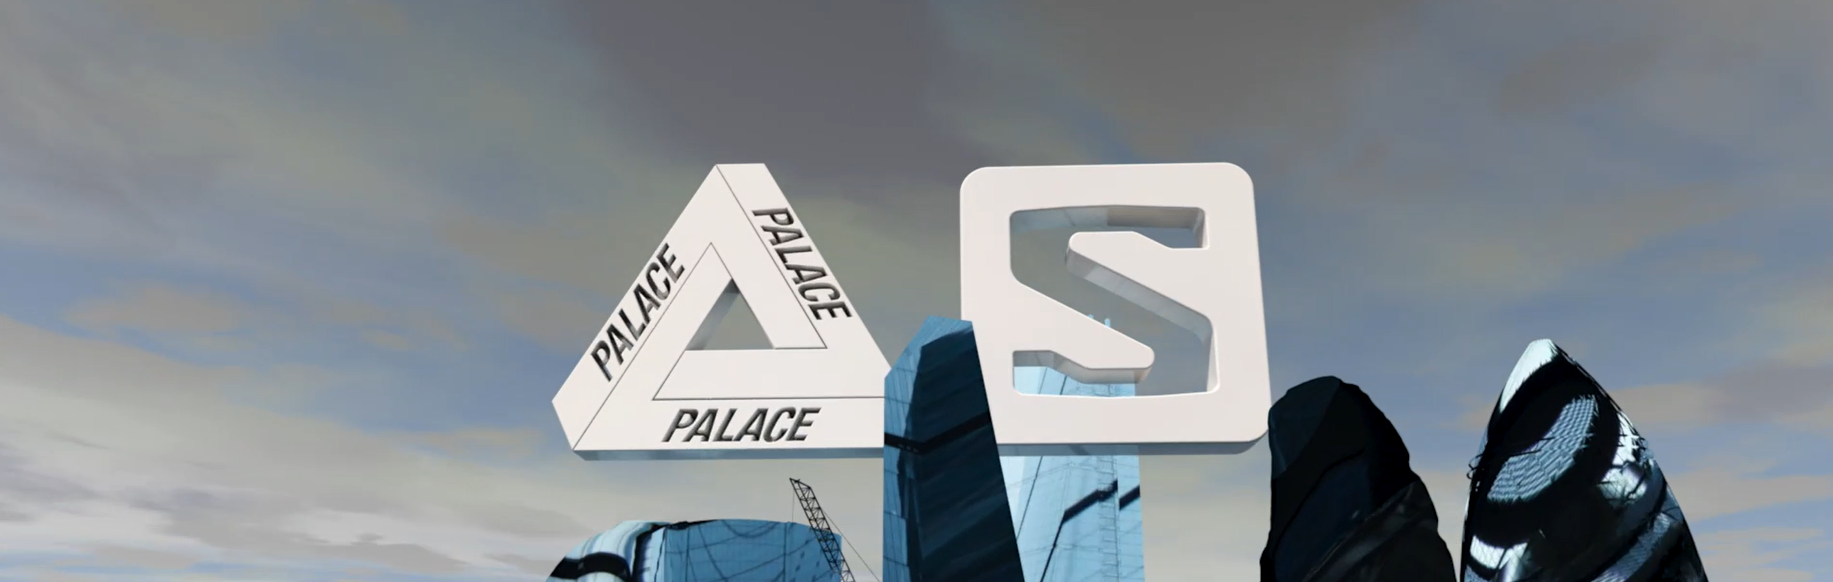 Palace x Salomon